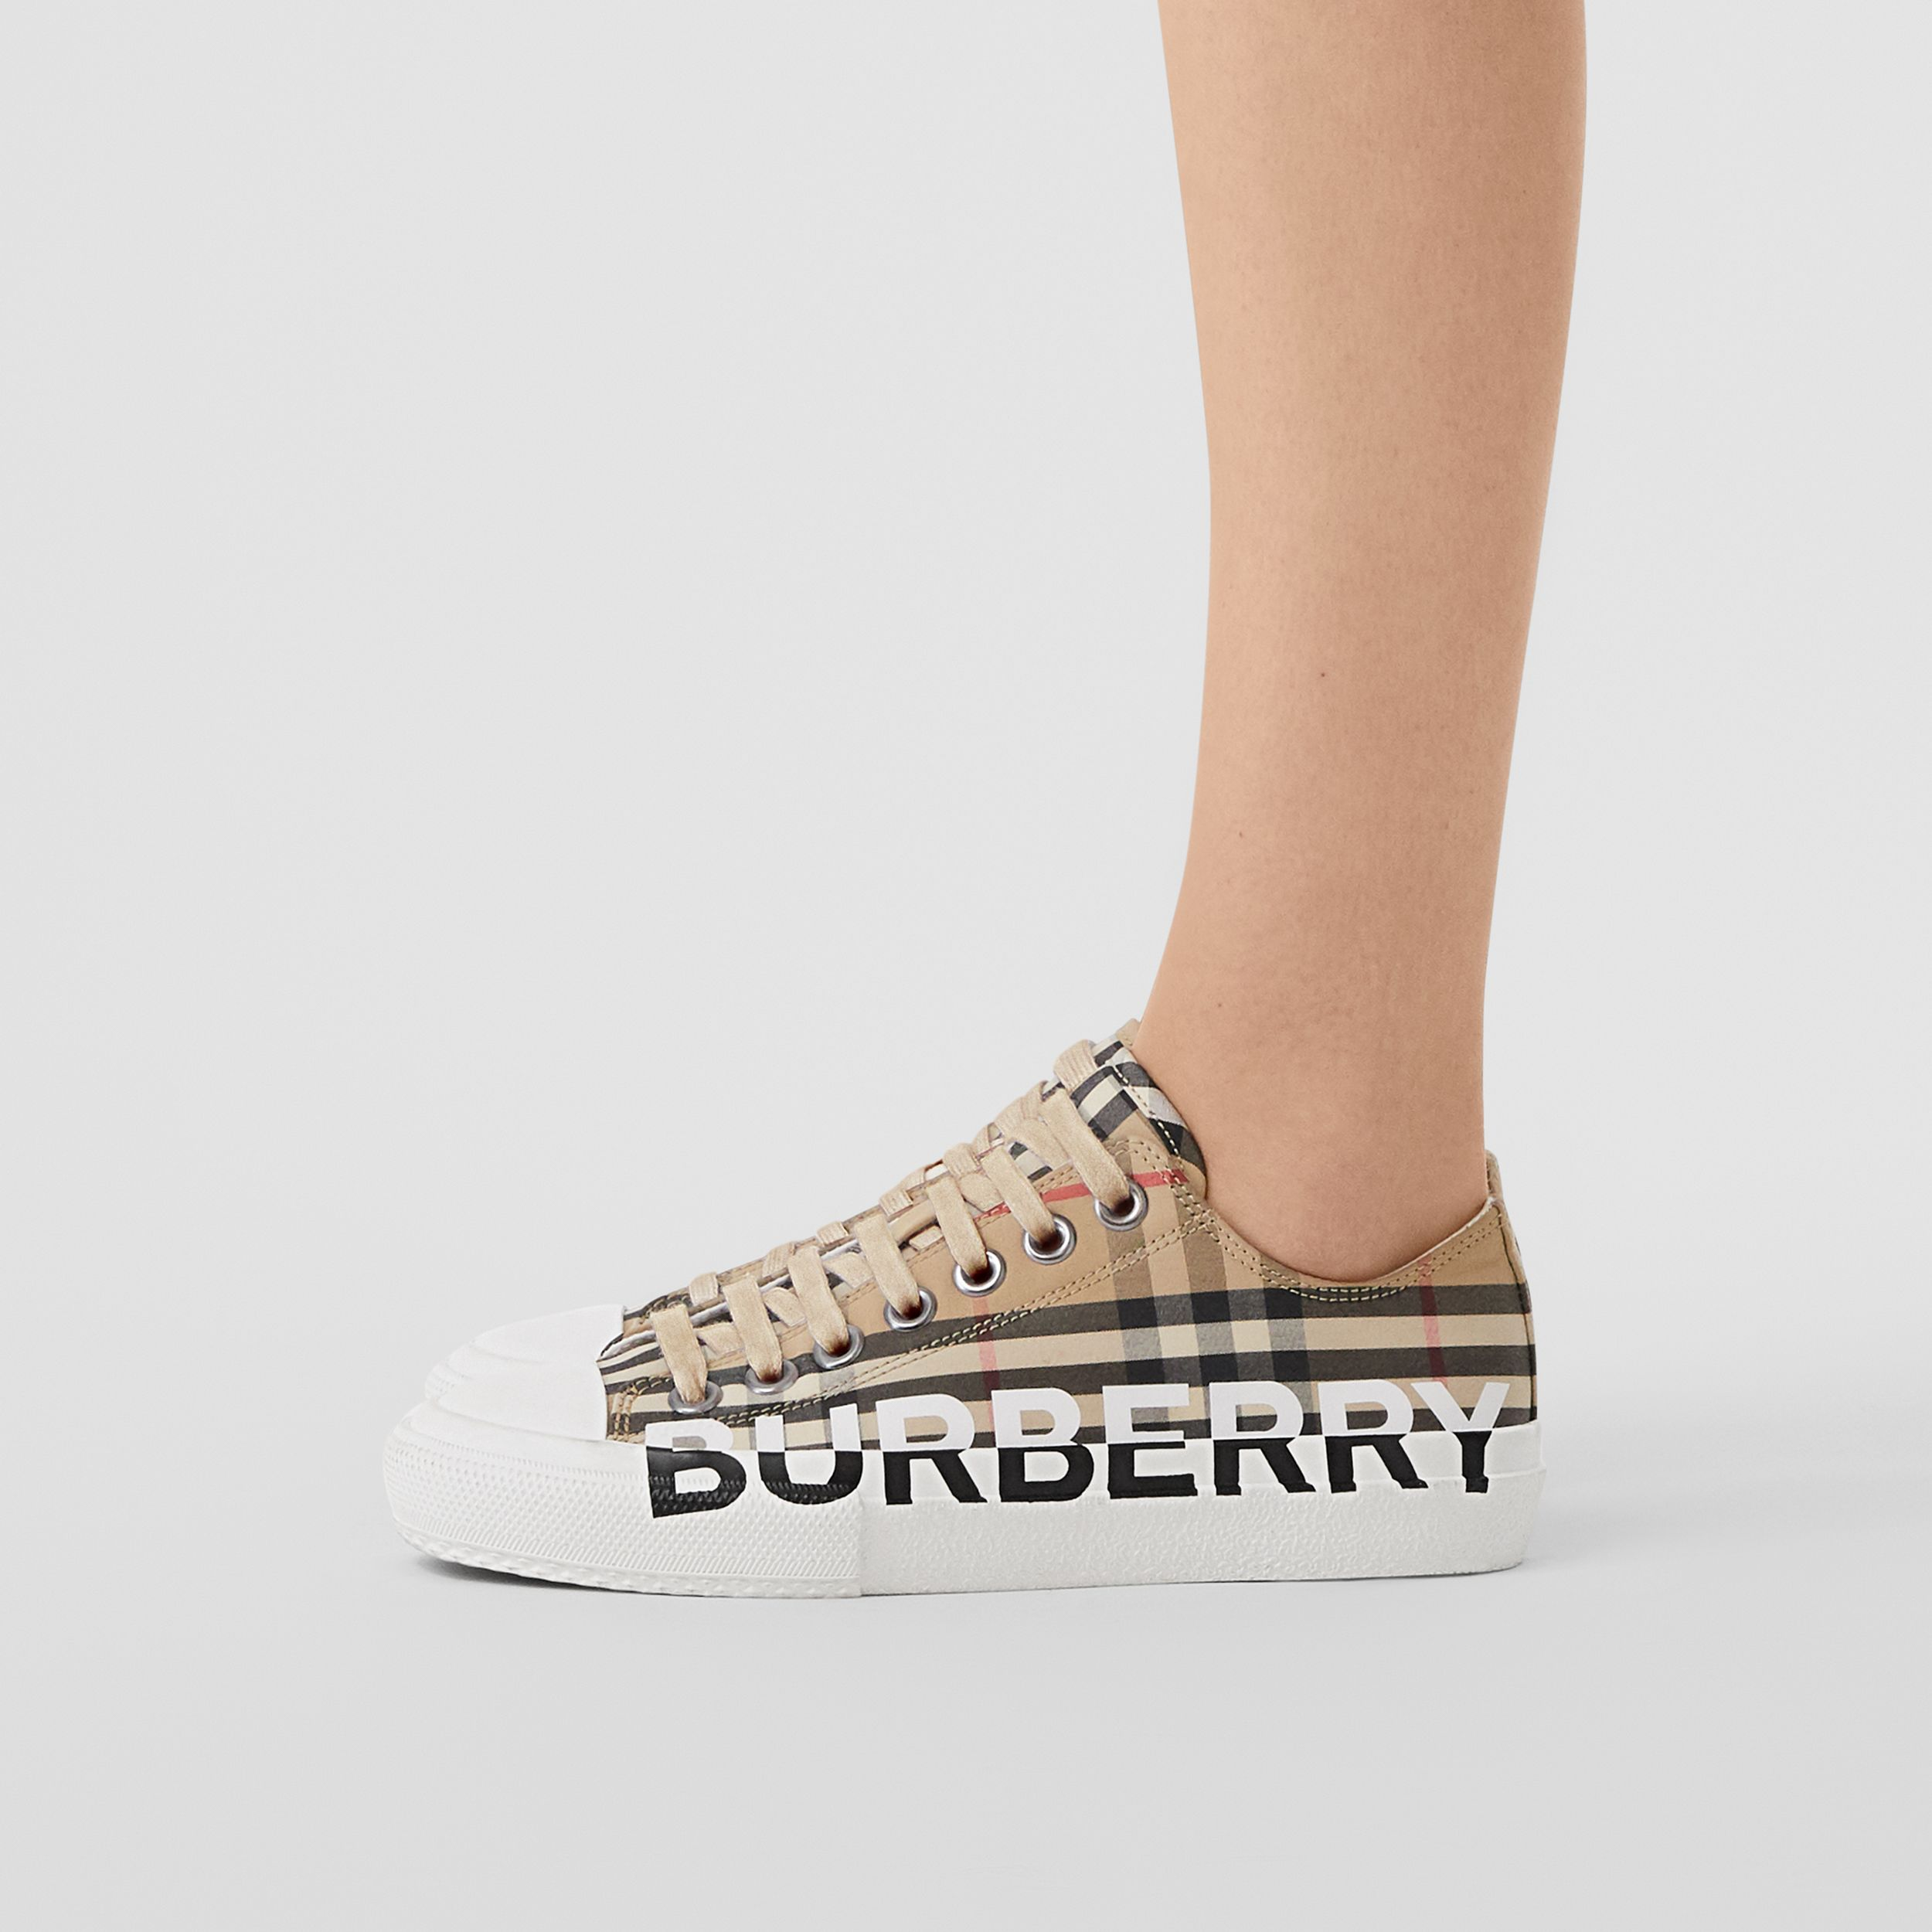 Logo Print Vintage Check Cotton Sneakers in Archive Beige - Women | Burberry United Kingdom - 3